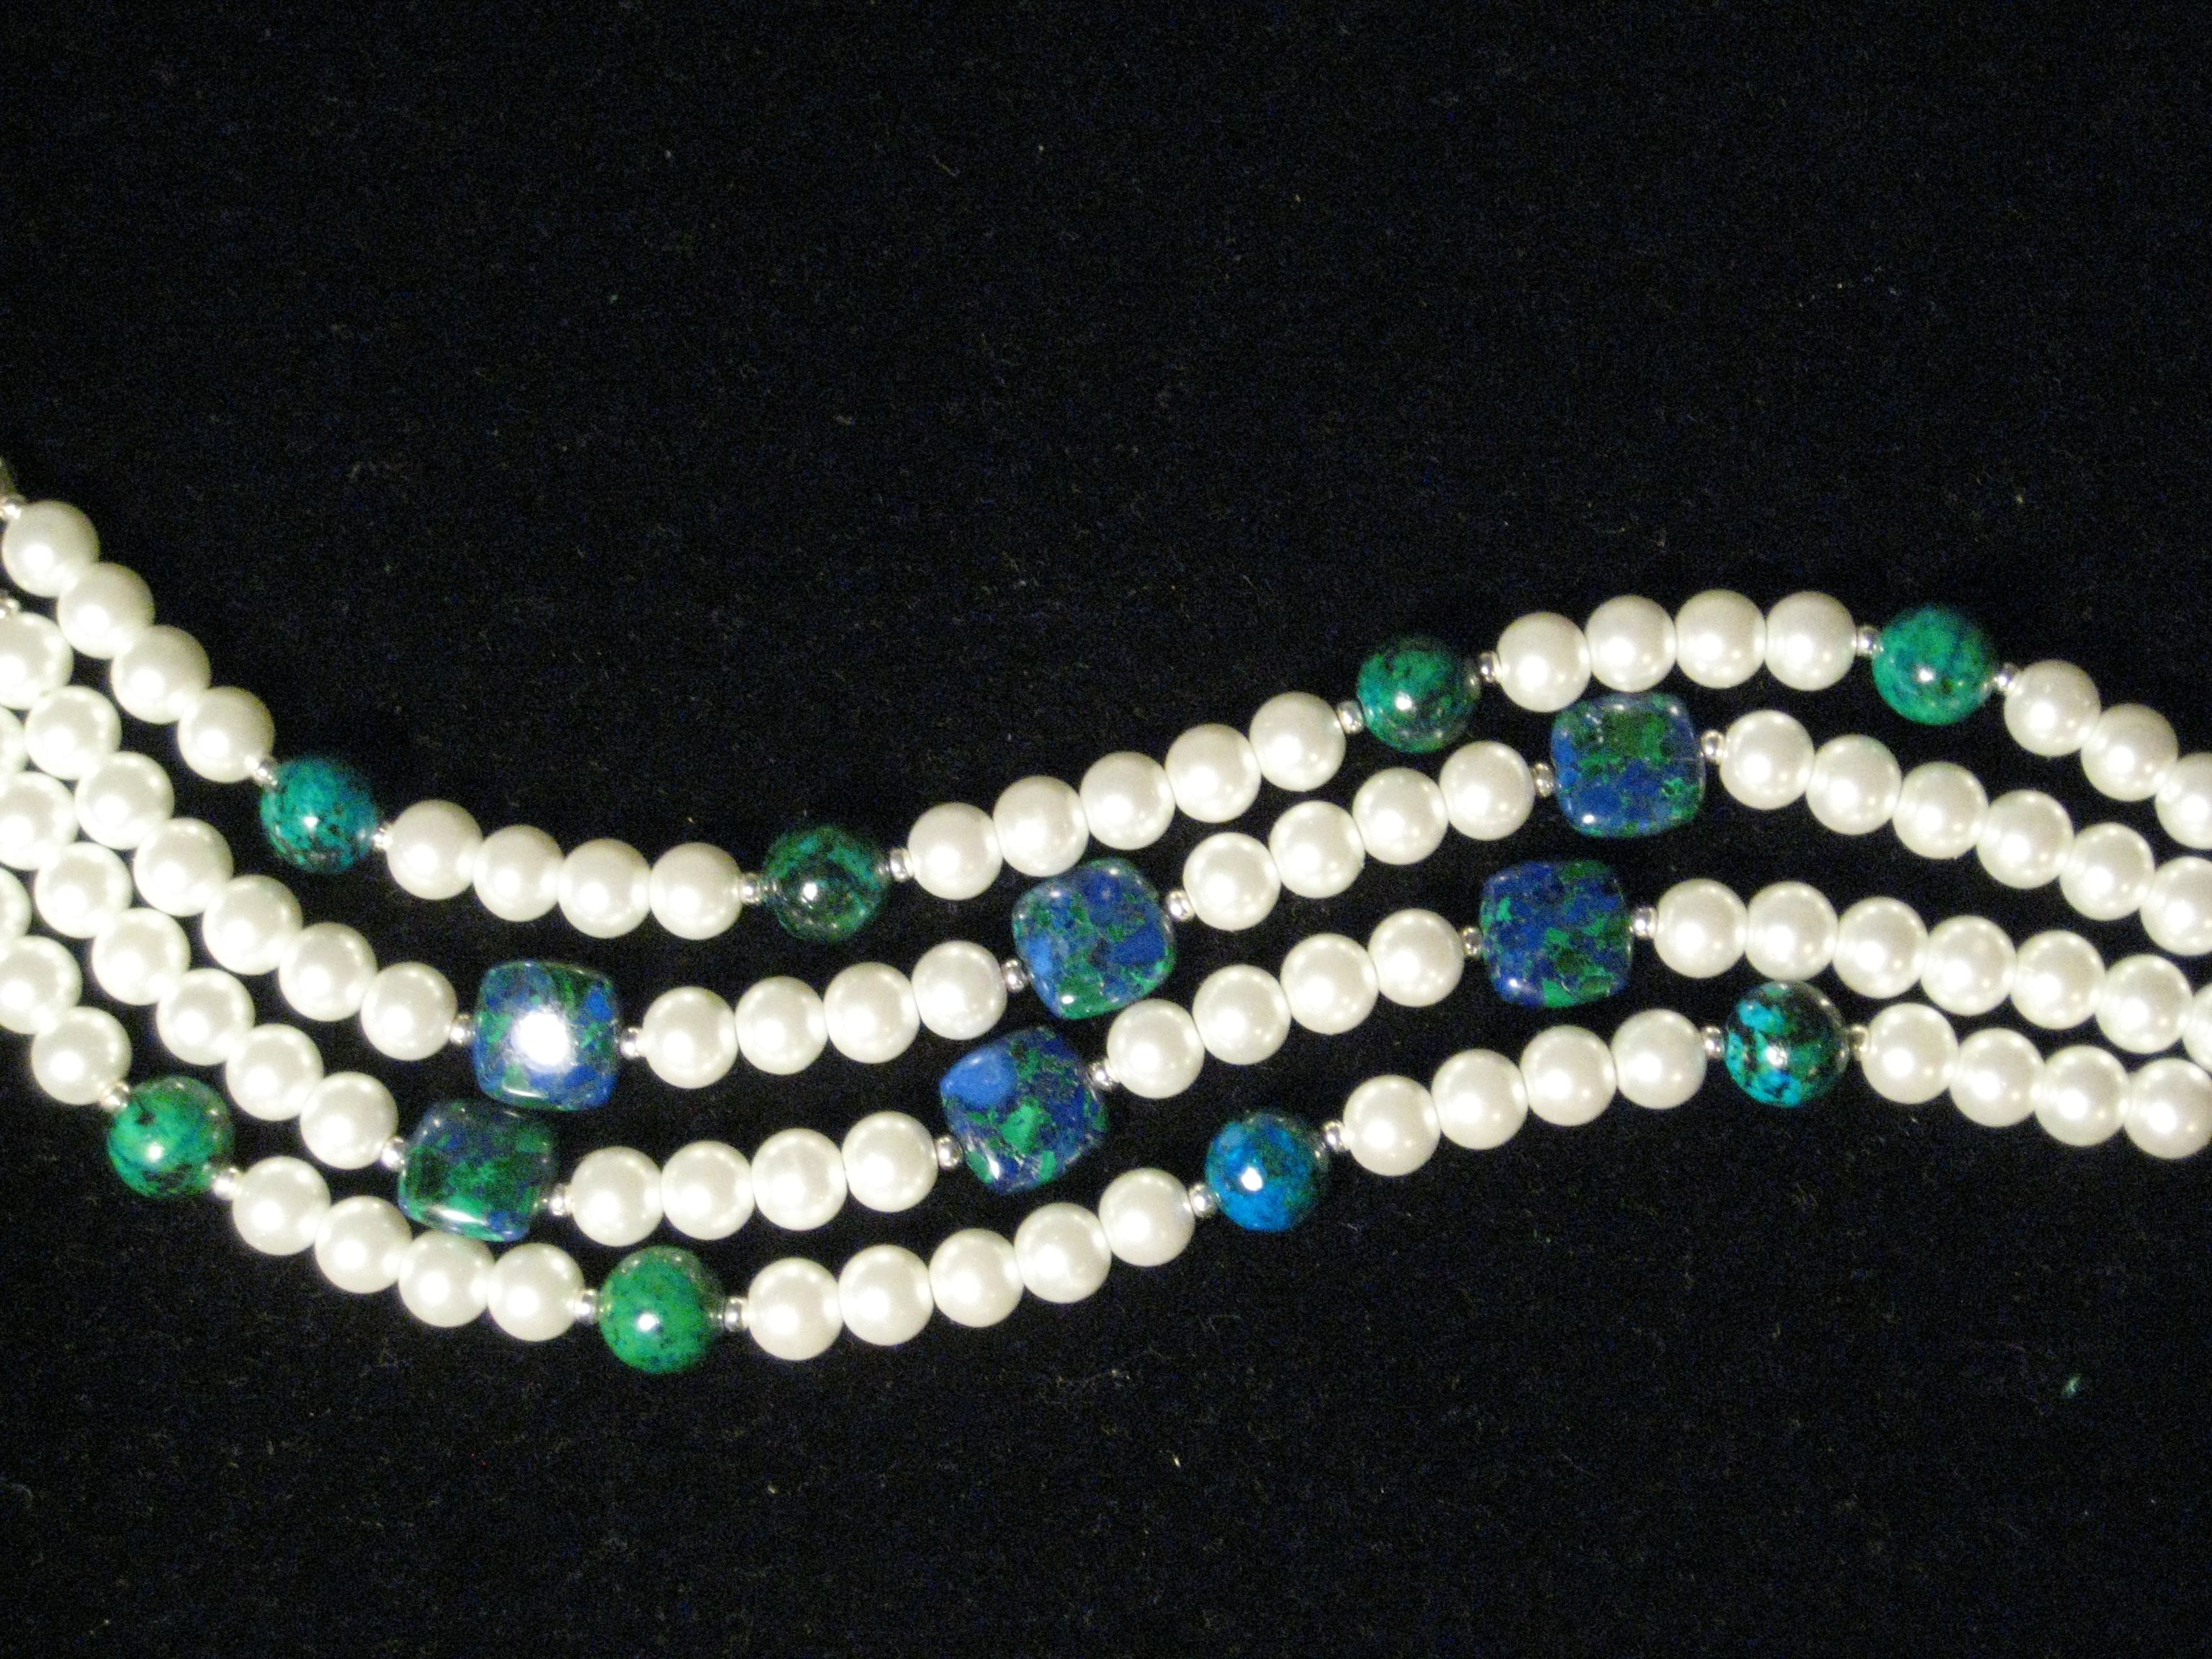 This is Azurite and White glass pearls and small silver spacers $35.00 plus shipping. This will make heads turn!!Very eye catching colors together!